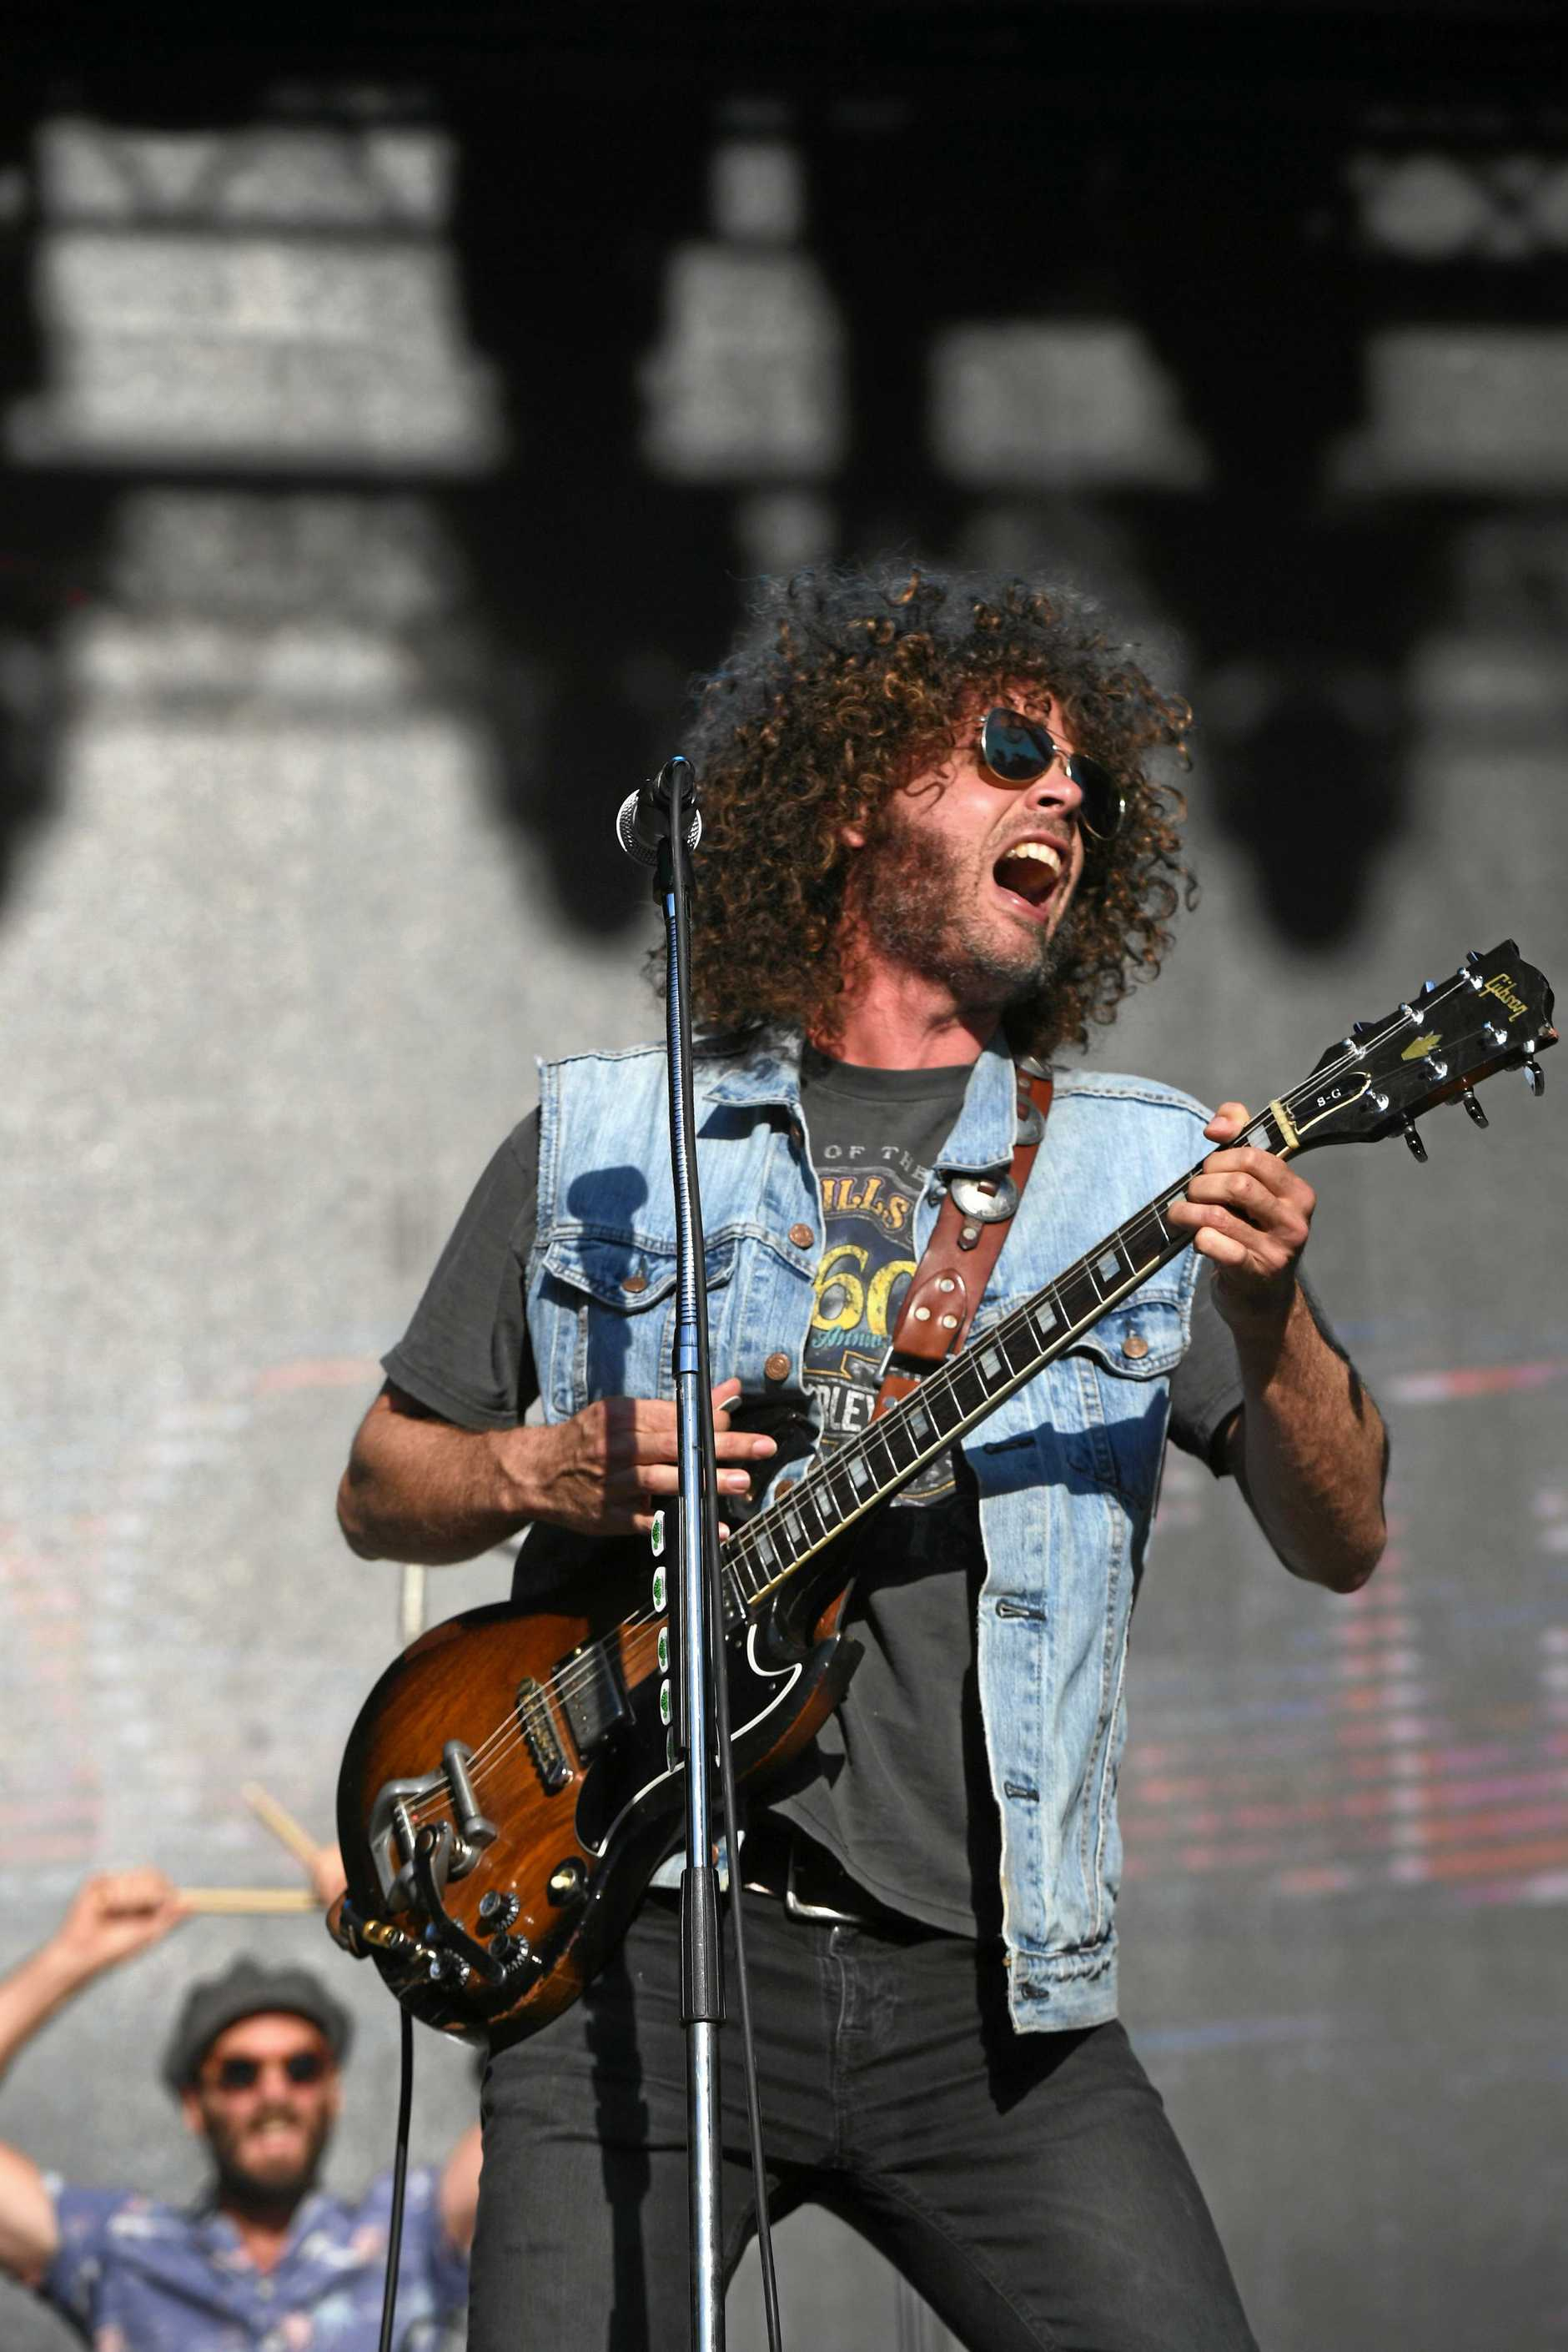 Wolfmother perform at Splendour in the Grass 2019 in Byron Bay.